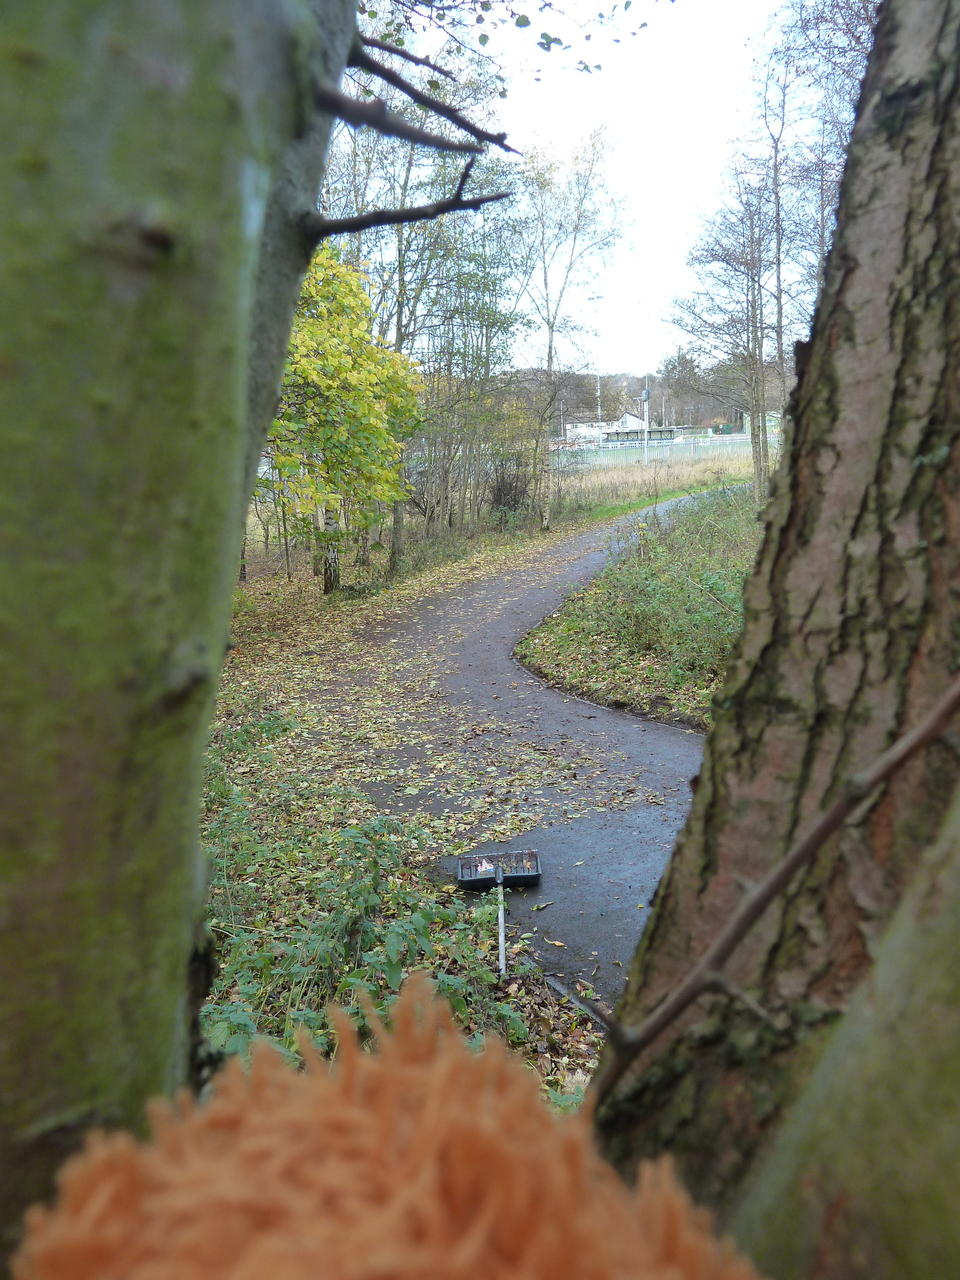 View of the path from the tree. There are only a few metres with leaves left.